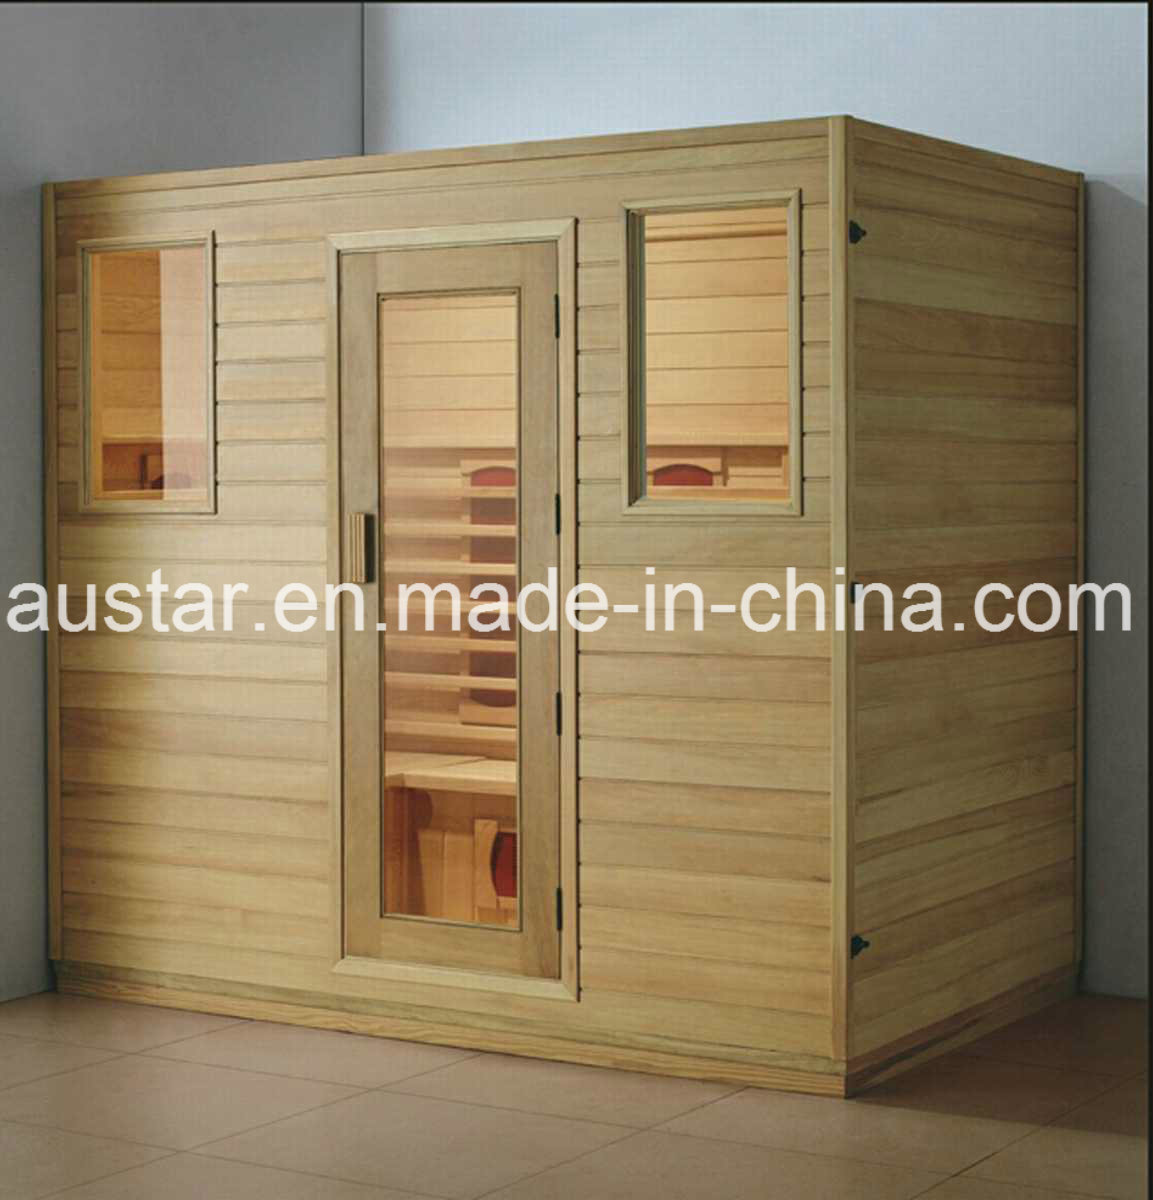 Solid Wood Sauna Room with Customized Size (AT-8616)